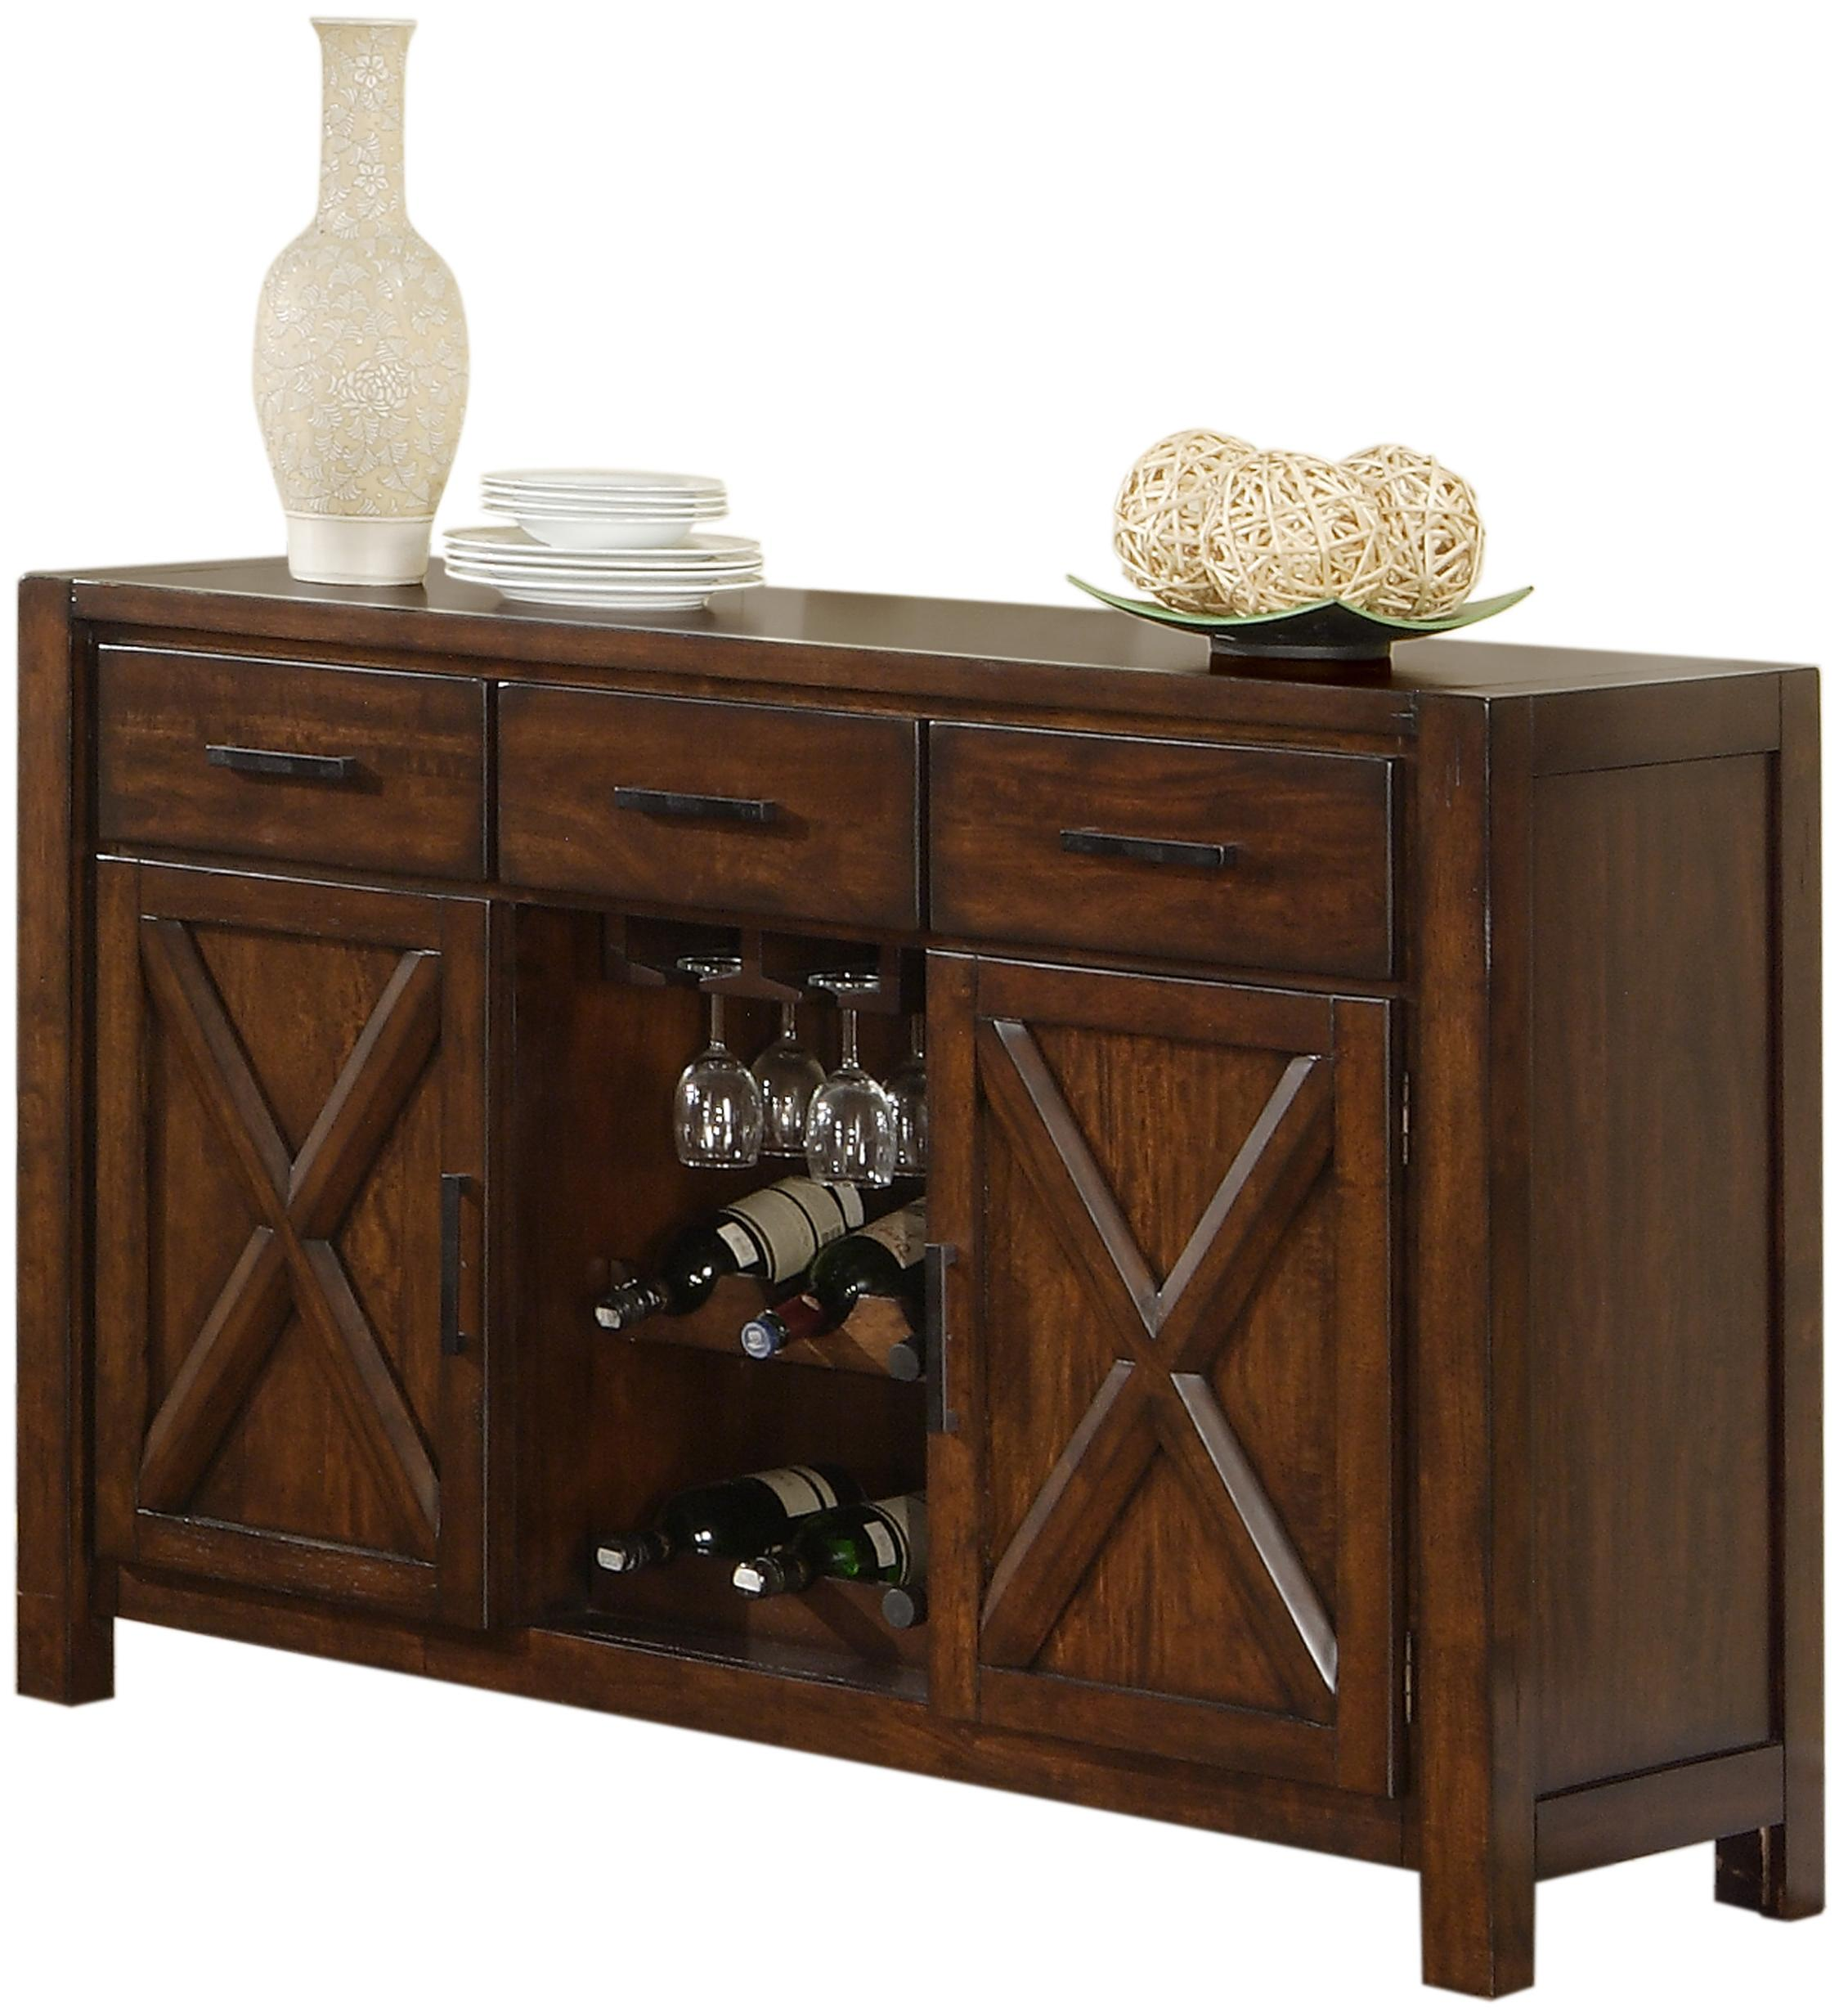 Morris Home Furnishings Norwalk Newport Sideboard - Item Number: 1278-5418